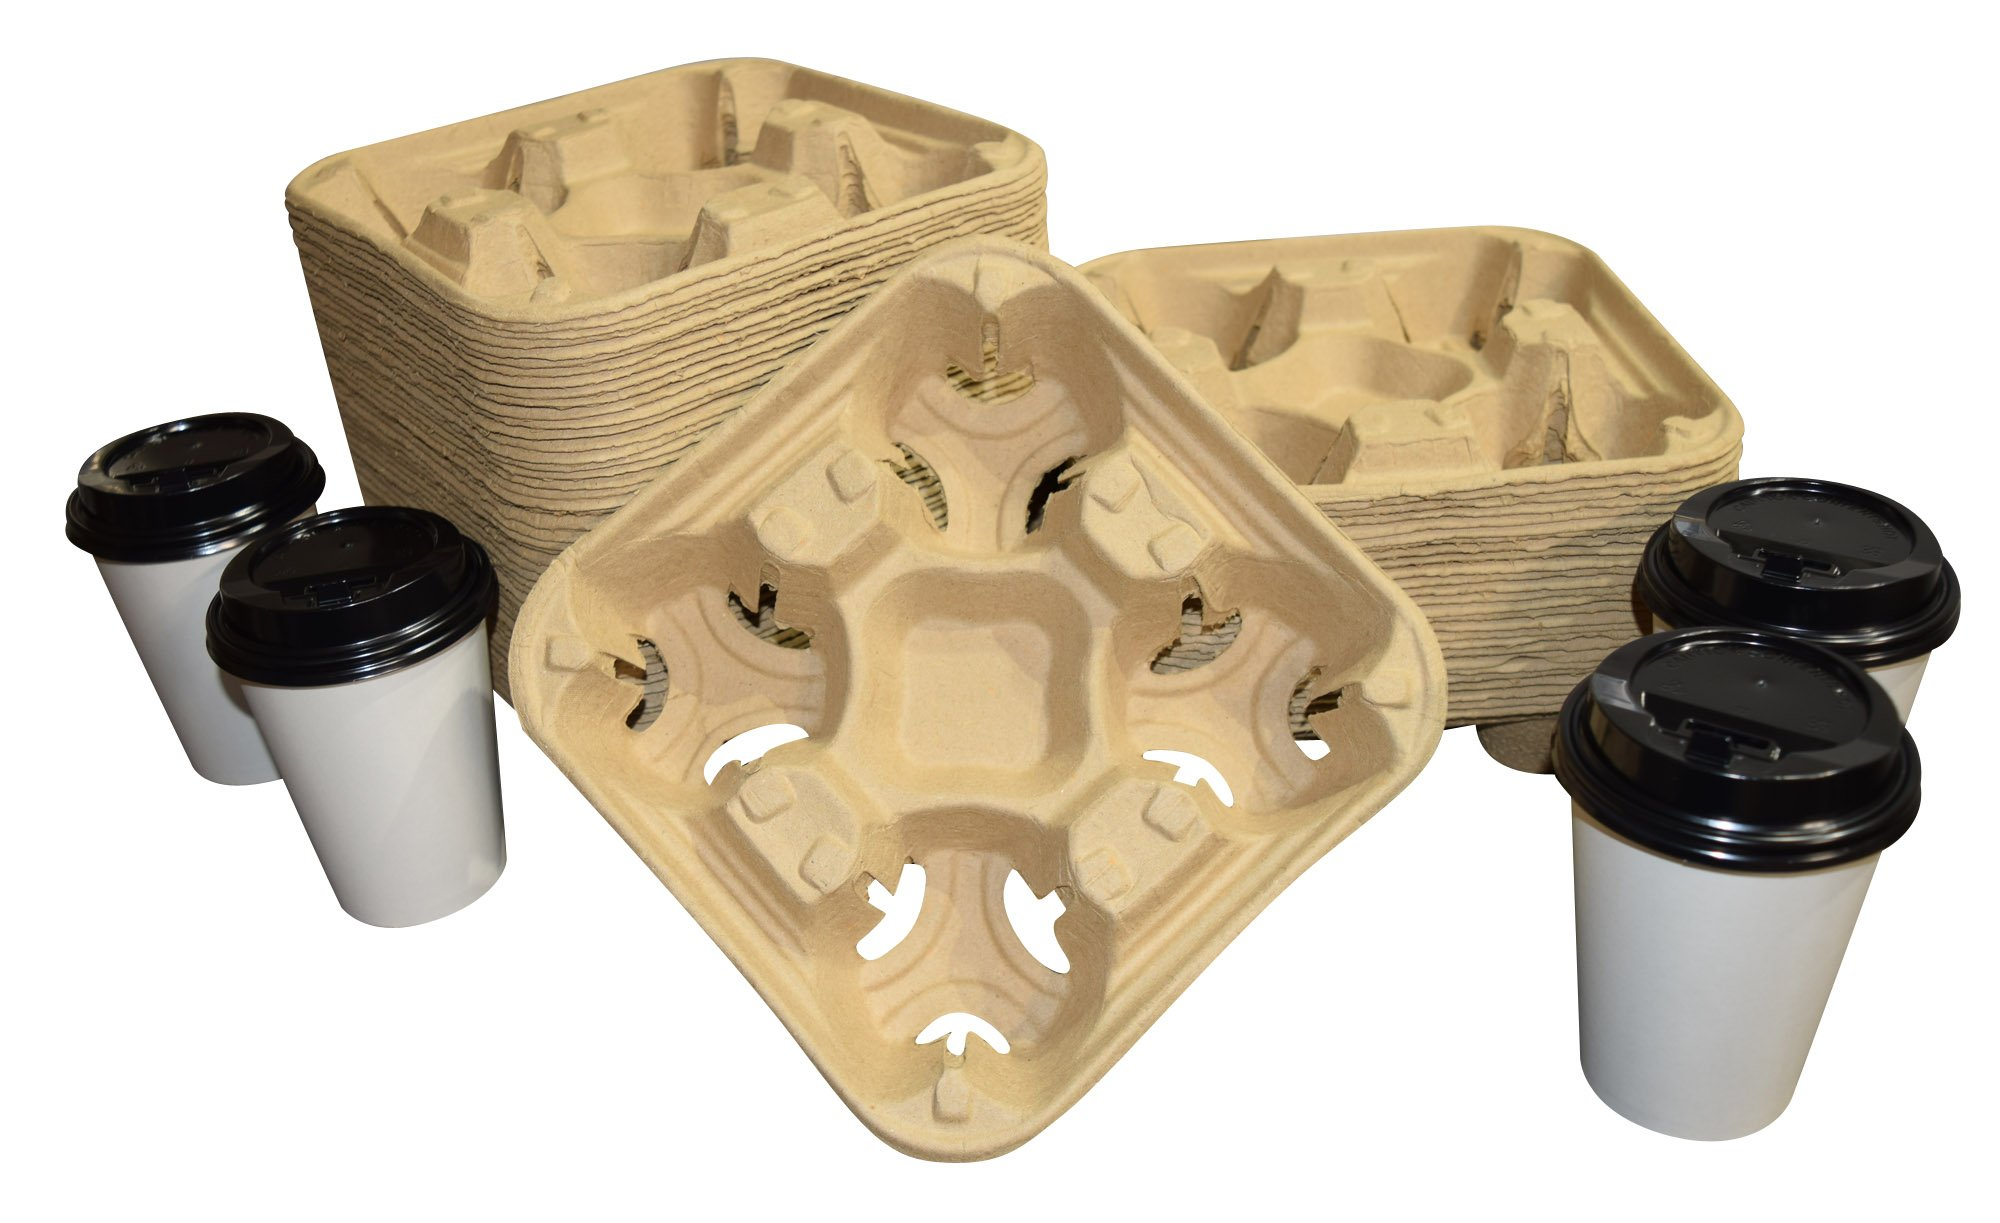 Biodegradable Pulp Fiber 4-Cup Drink Carrier Tray/Holder for Cold or Hot Drinks - Set of 75